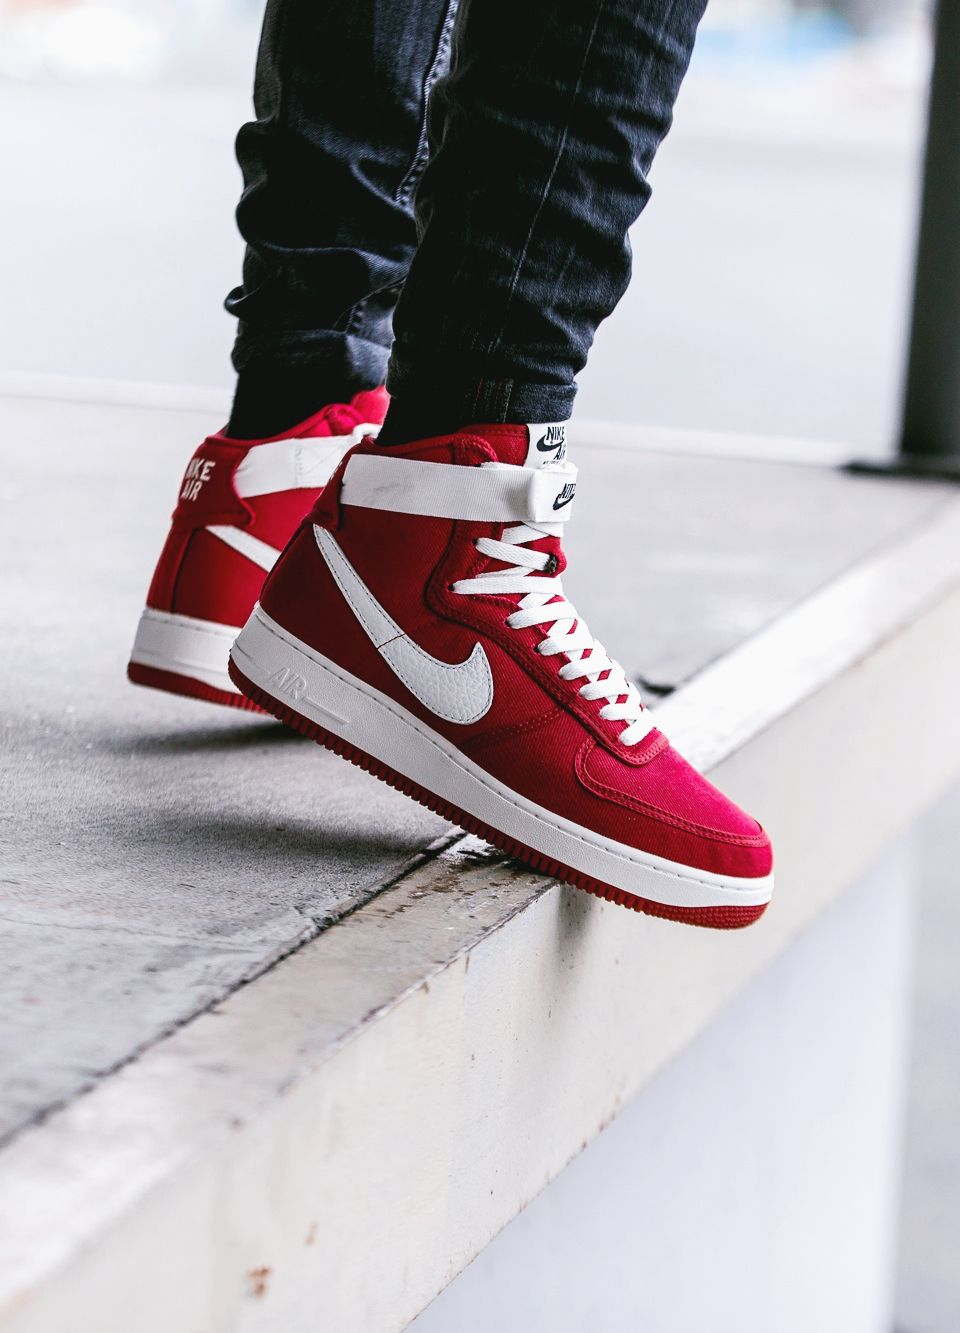 Hyperfuse Solar 1 For Force Nike Air Red Sale Christmas zMSVpGLqU